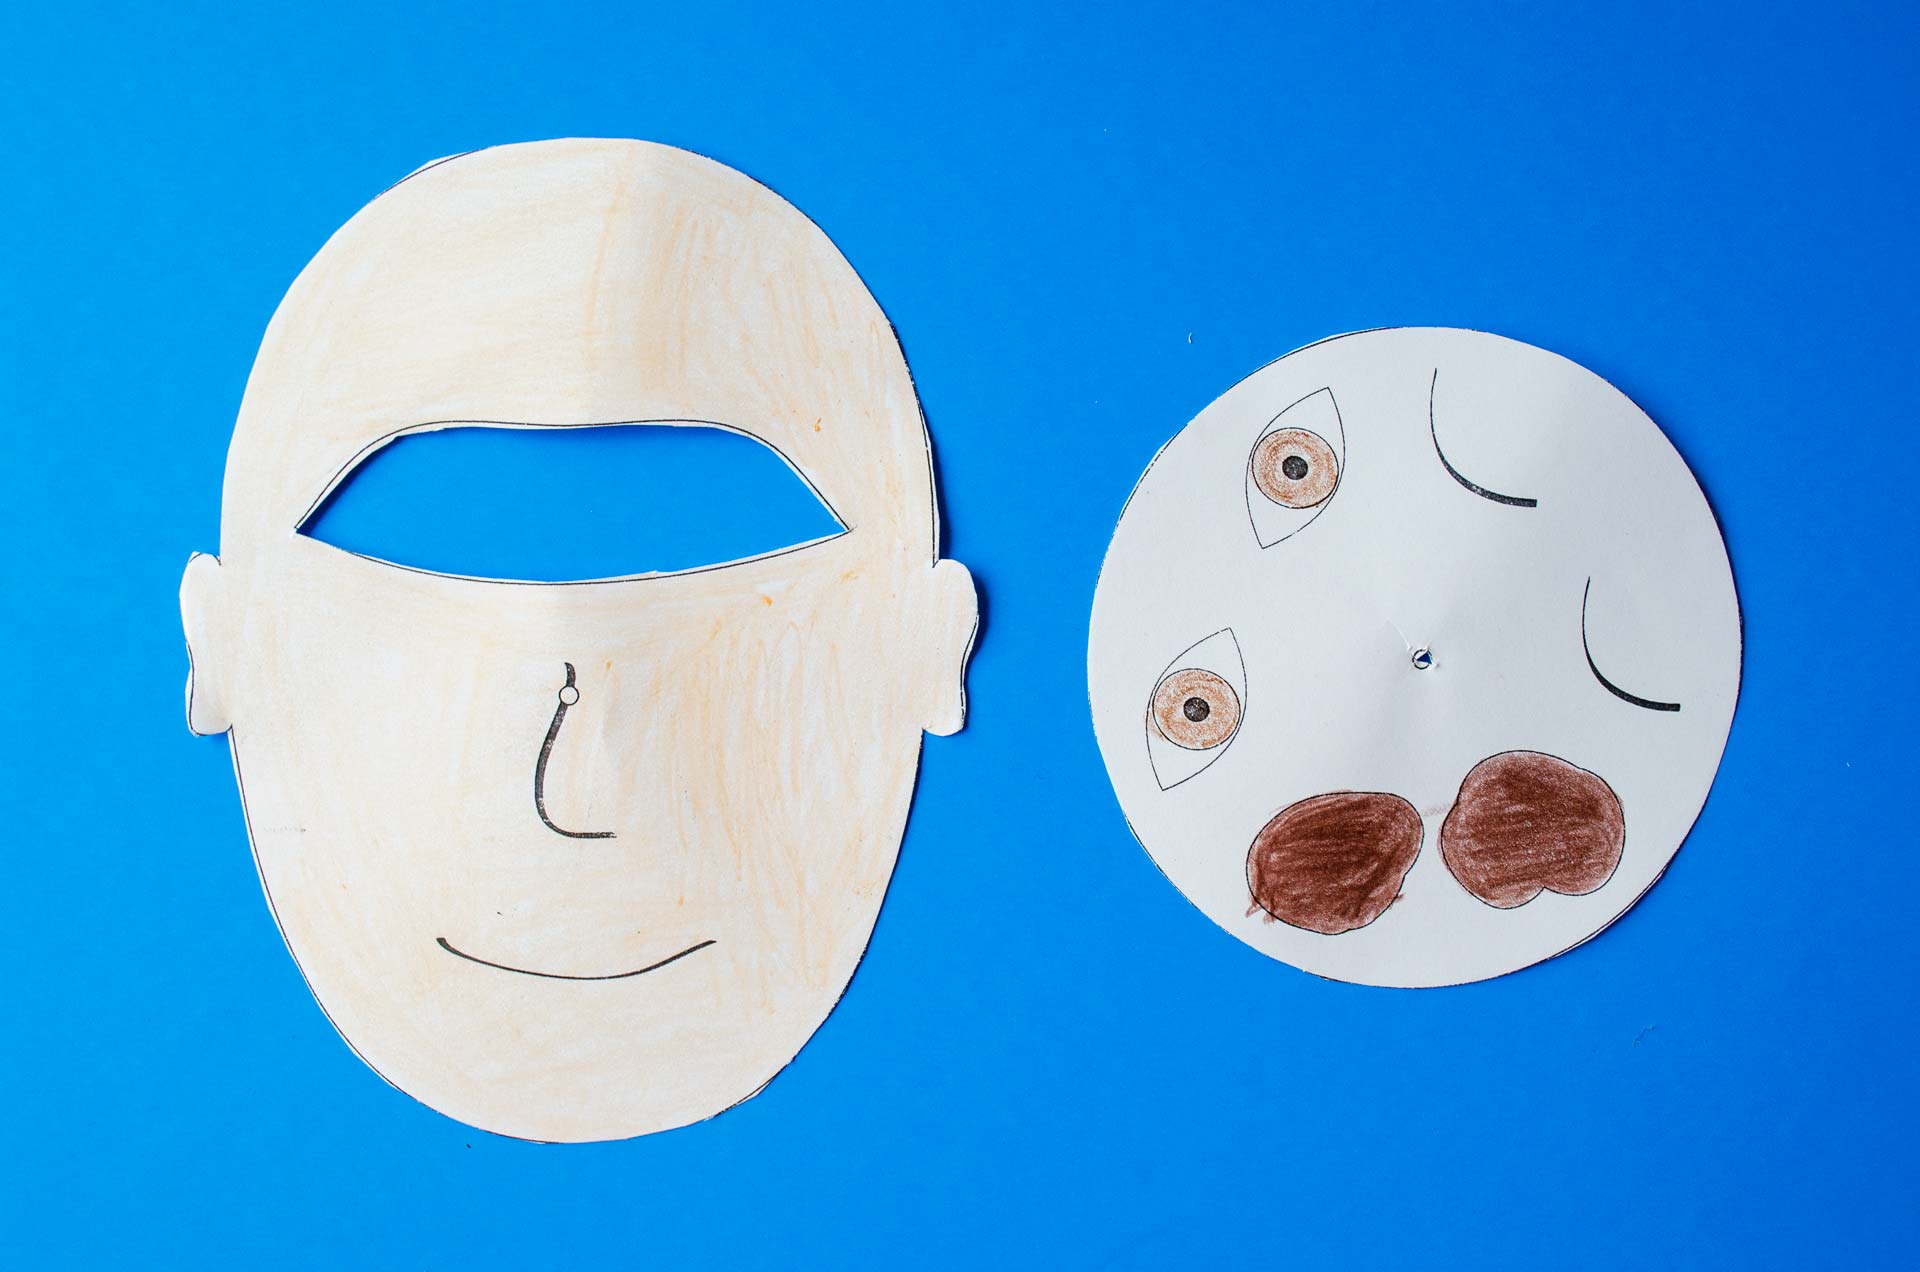 Man face ad eye wheel are cut out and placed on blue background